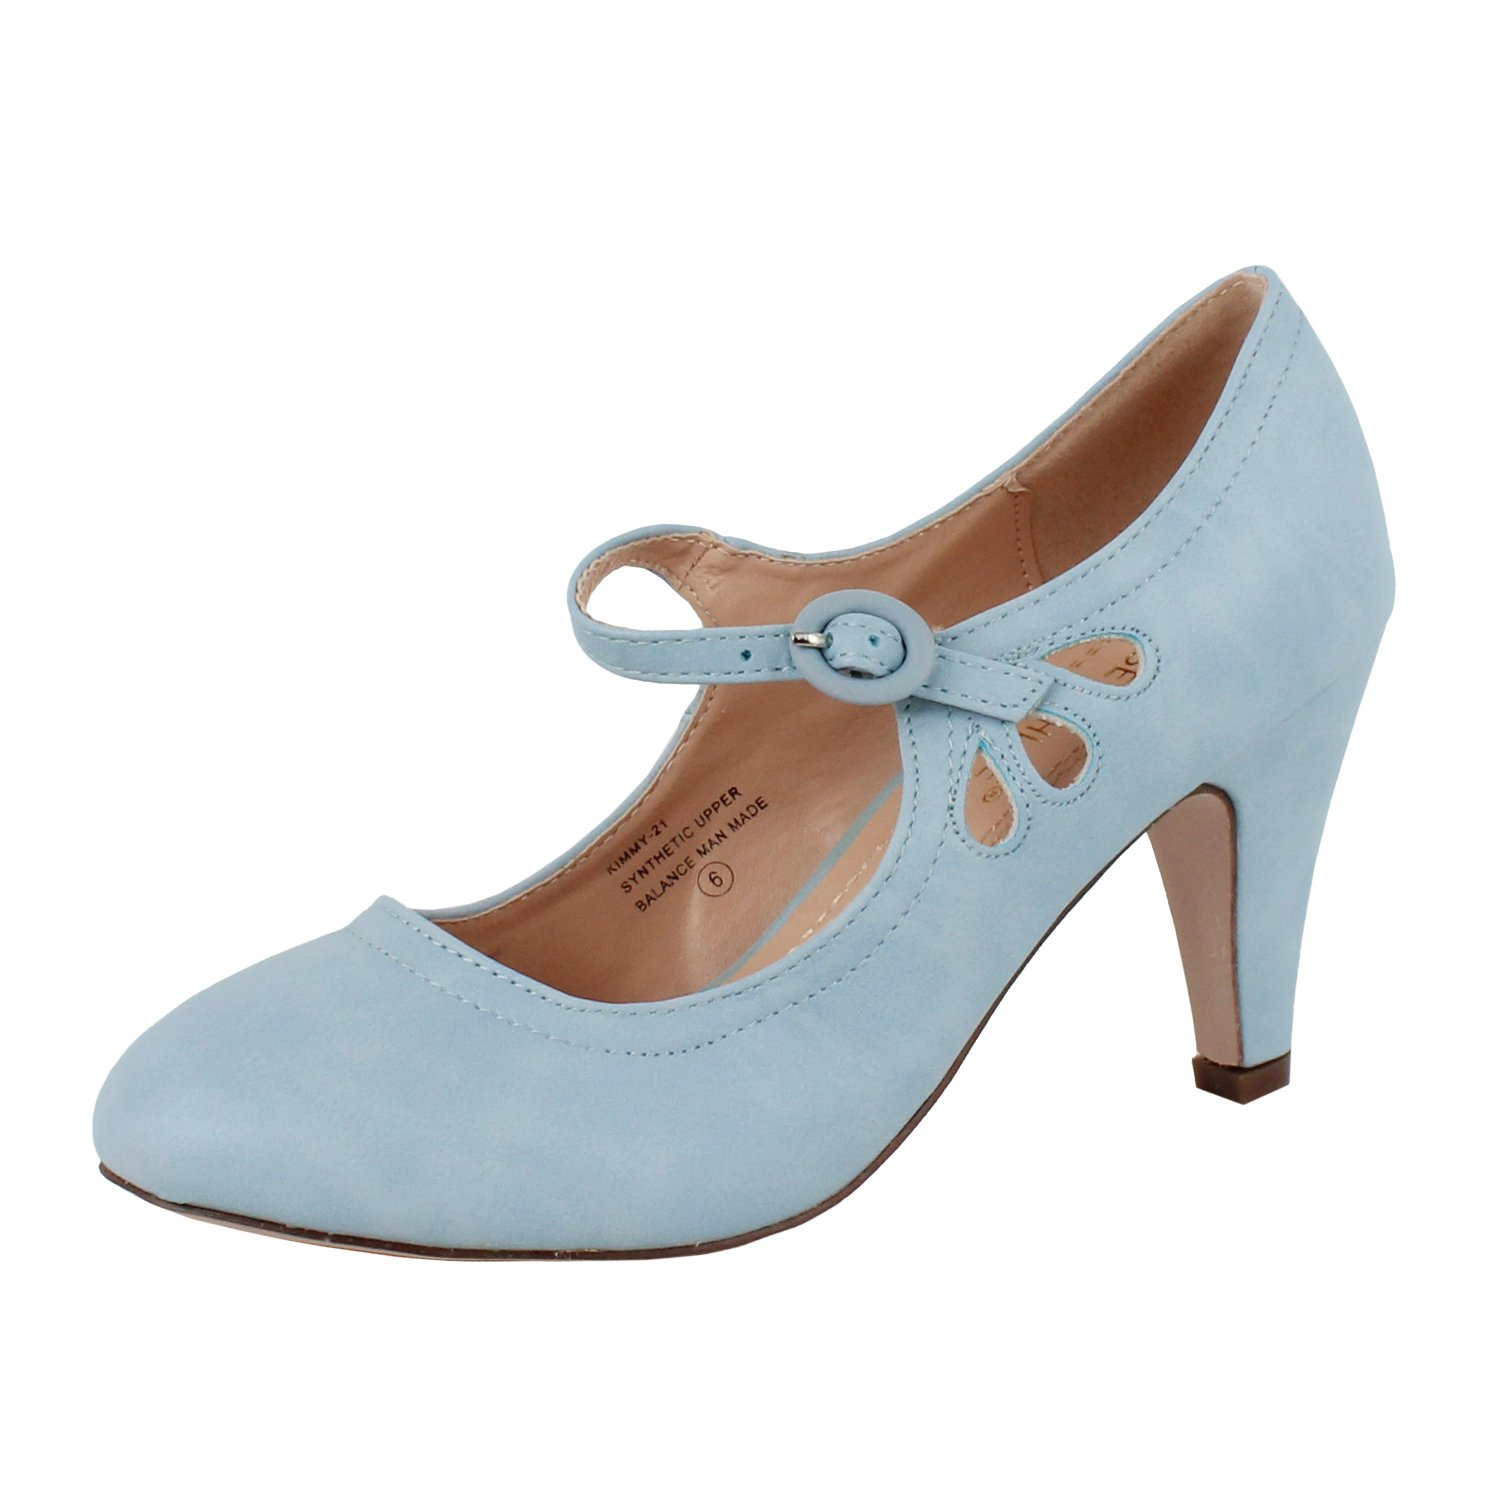 Chase and Chloe Kimmy-21 Mary Jane Teardrop Cutout T-Strap Pump Heel (6.5 M US, Serenity Blue) by Chase & Chloe